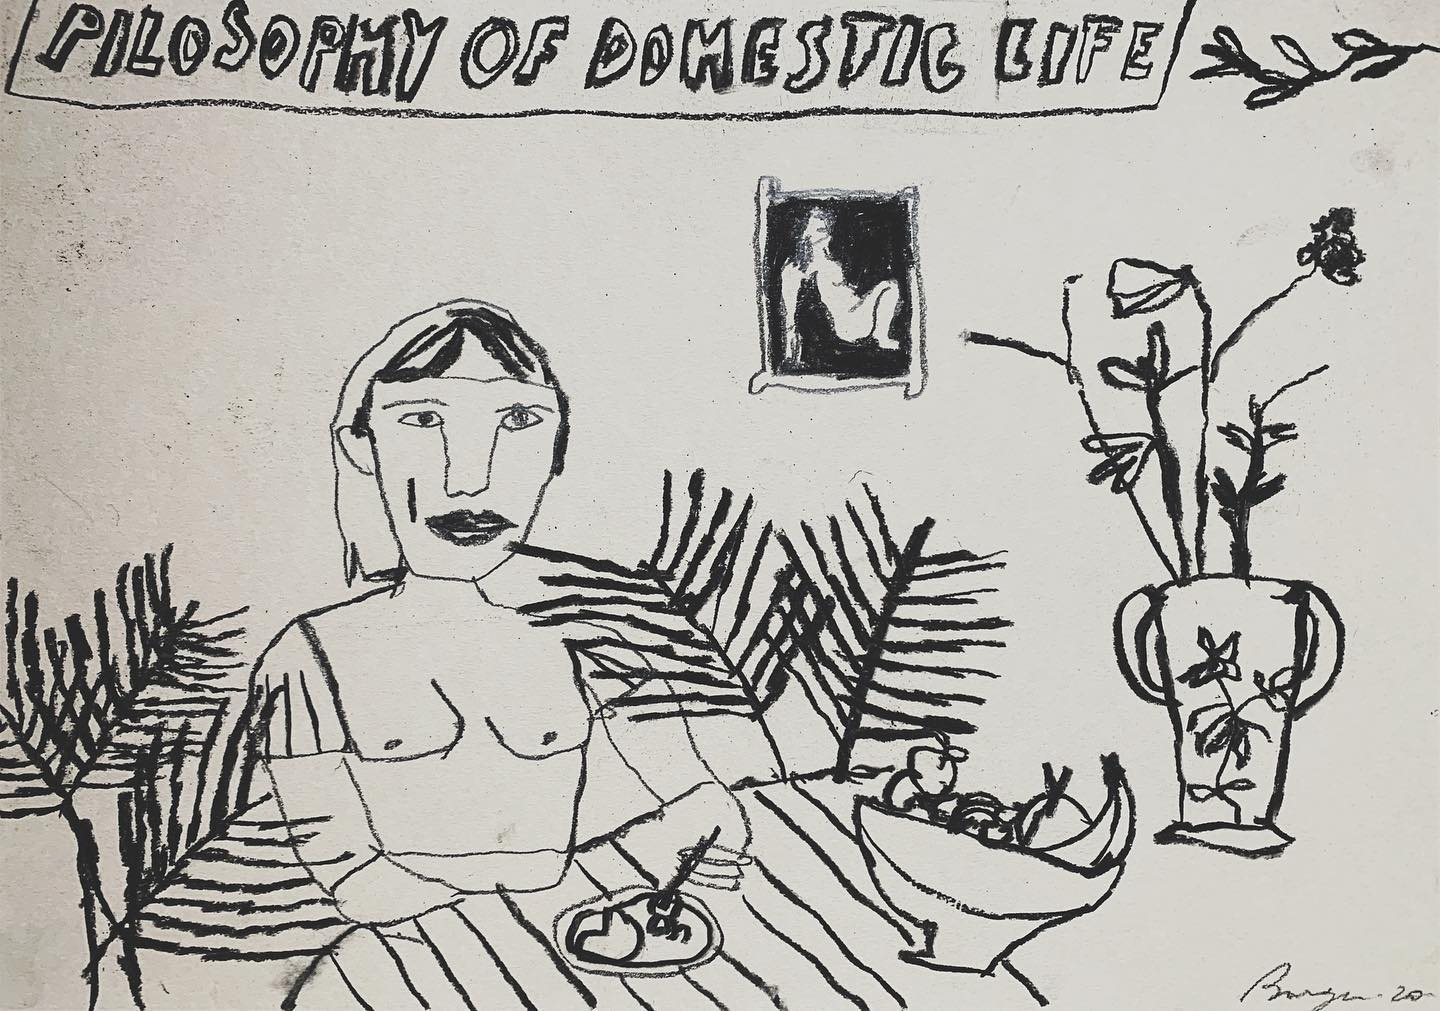 A philosophy of domestic life by Abel Burger